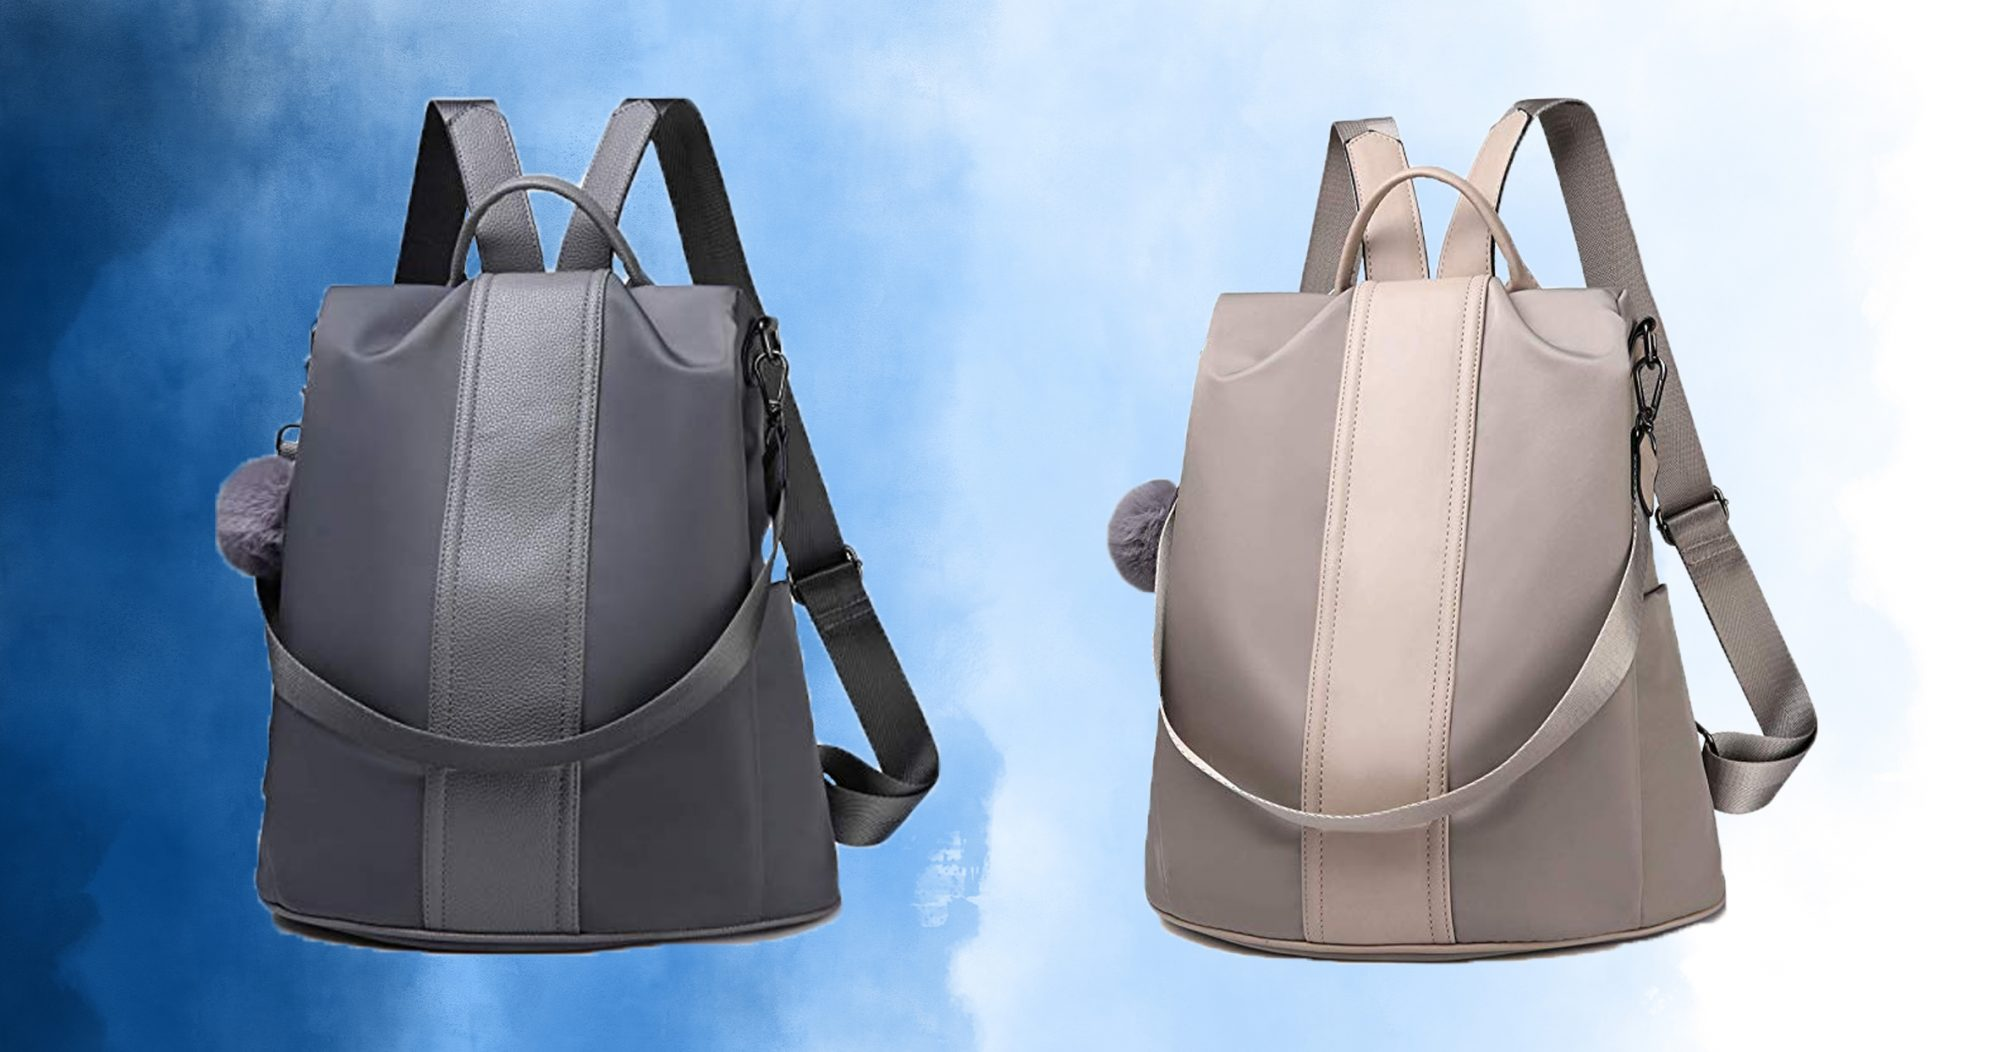 This Sleek Backpack Is *Way* More Comfortable Than a Tote Bag